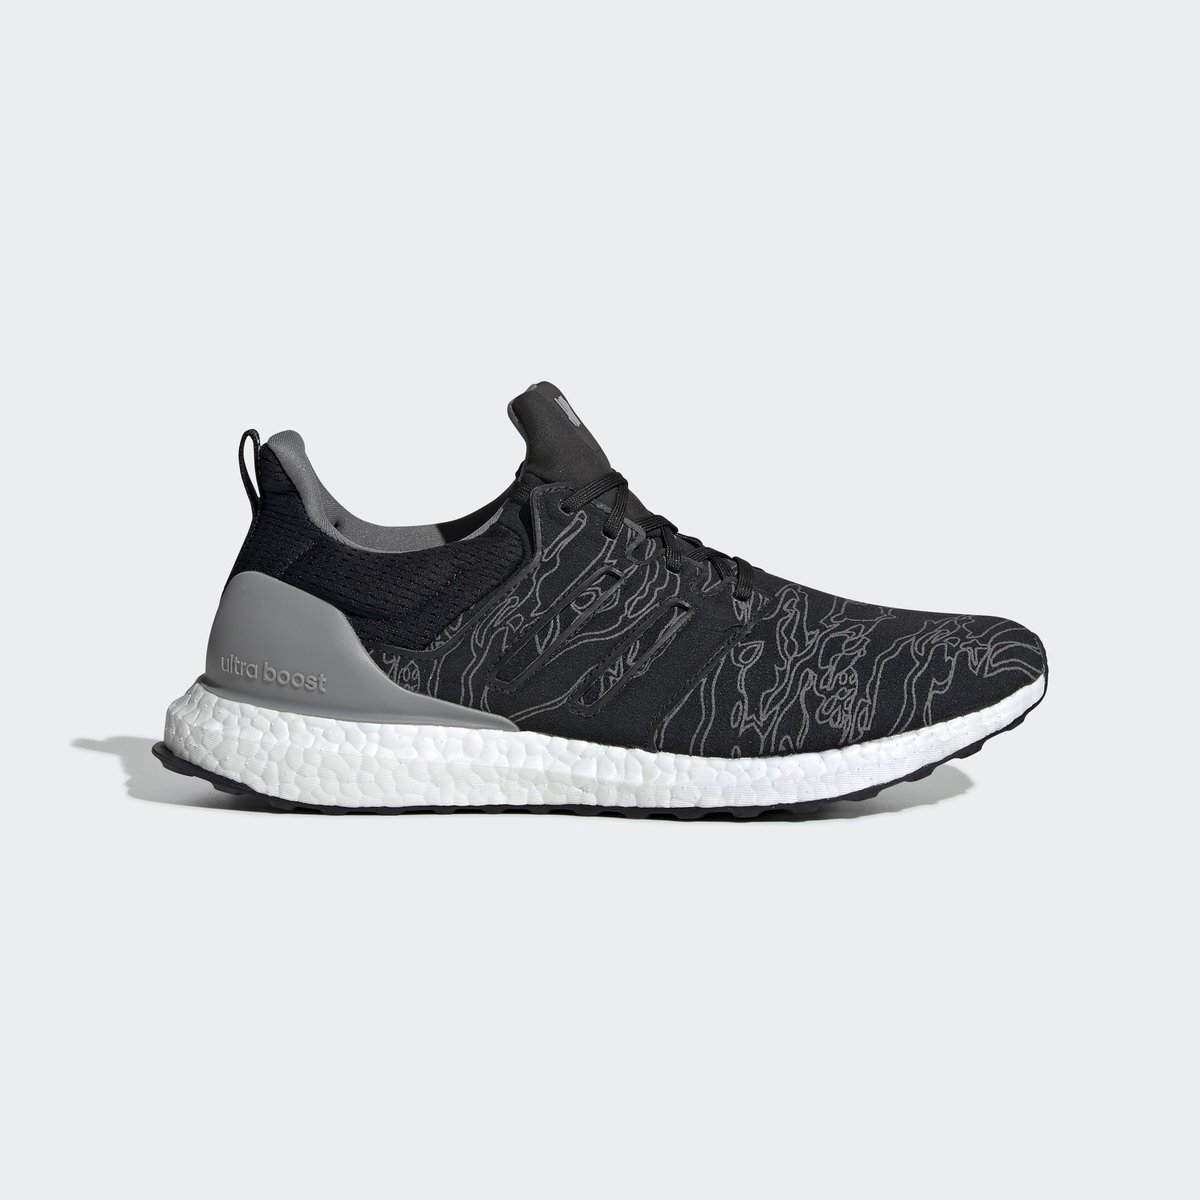 01a7b3a2d822 Official Images of upcoming UNDEFEATED x adidas Ultra Boost  Core Black   http   bit.ly 2CLZlgK pic.twitter.com fiEoJSC0zX